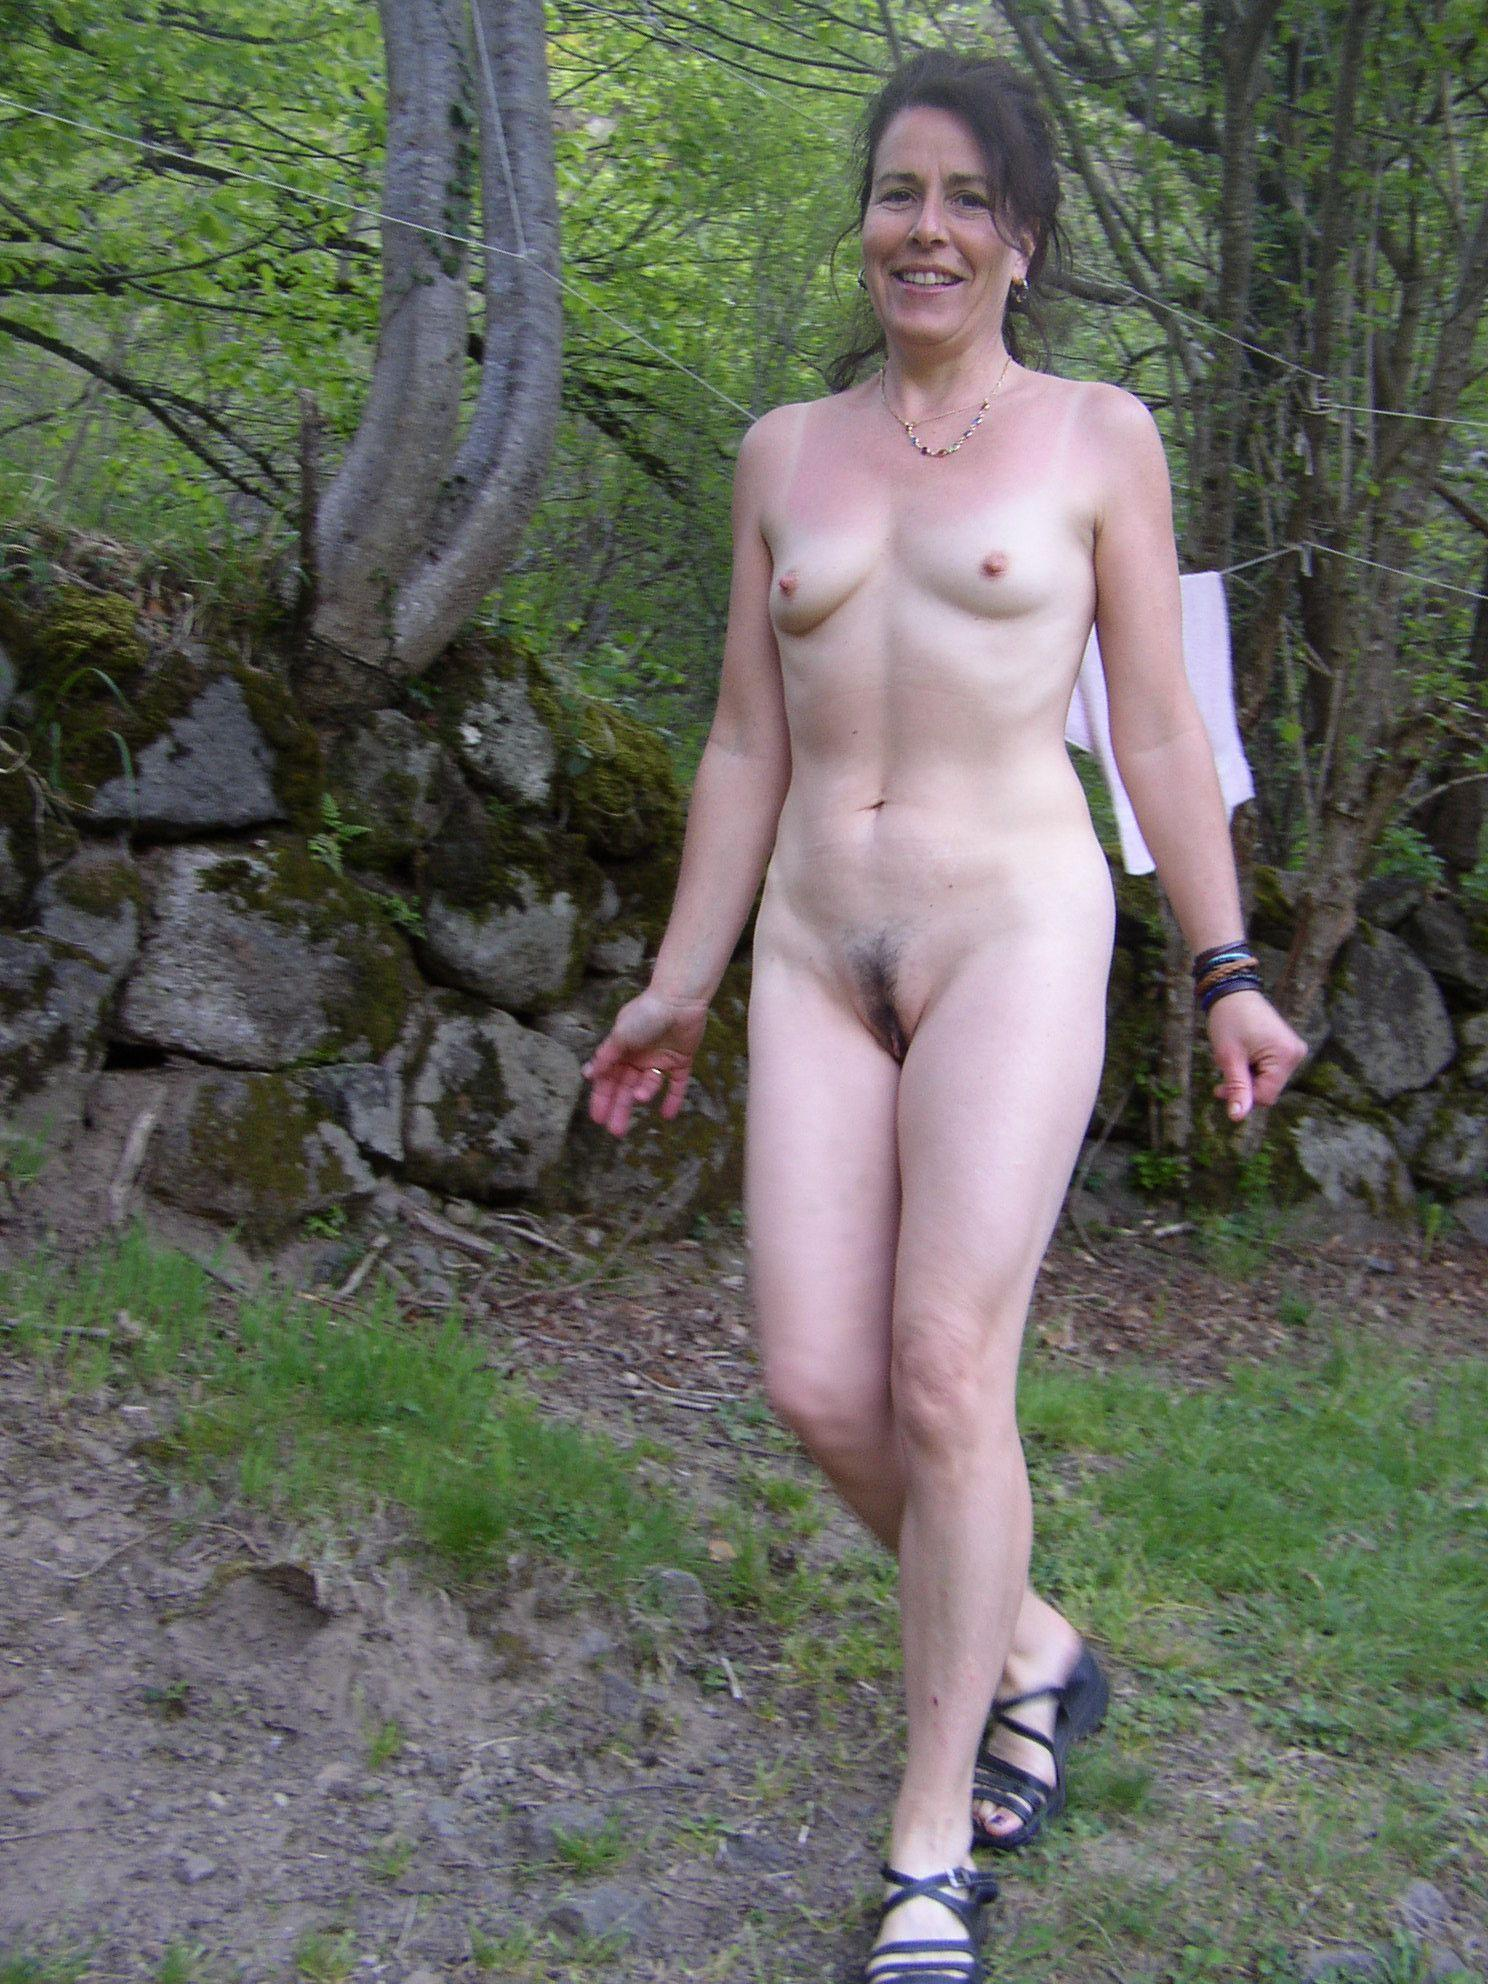 Think, mature naked older women outside tumblr